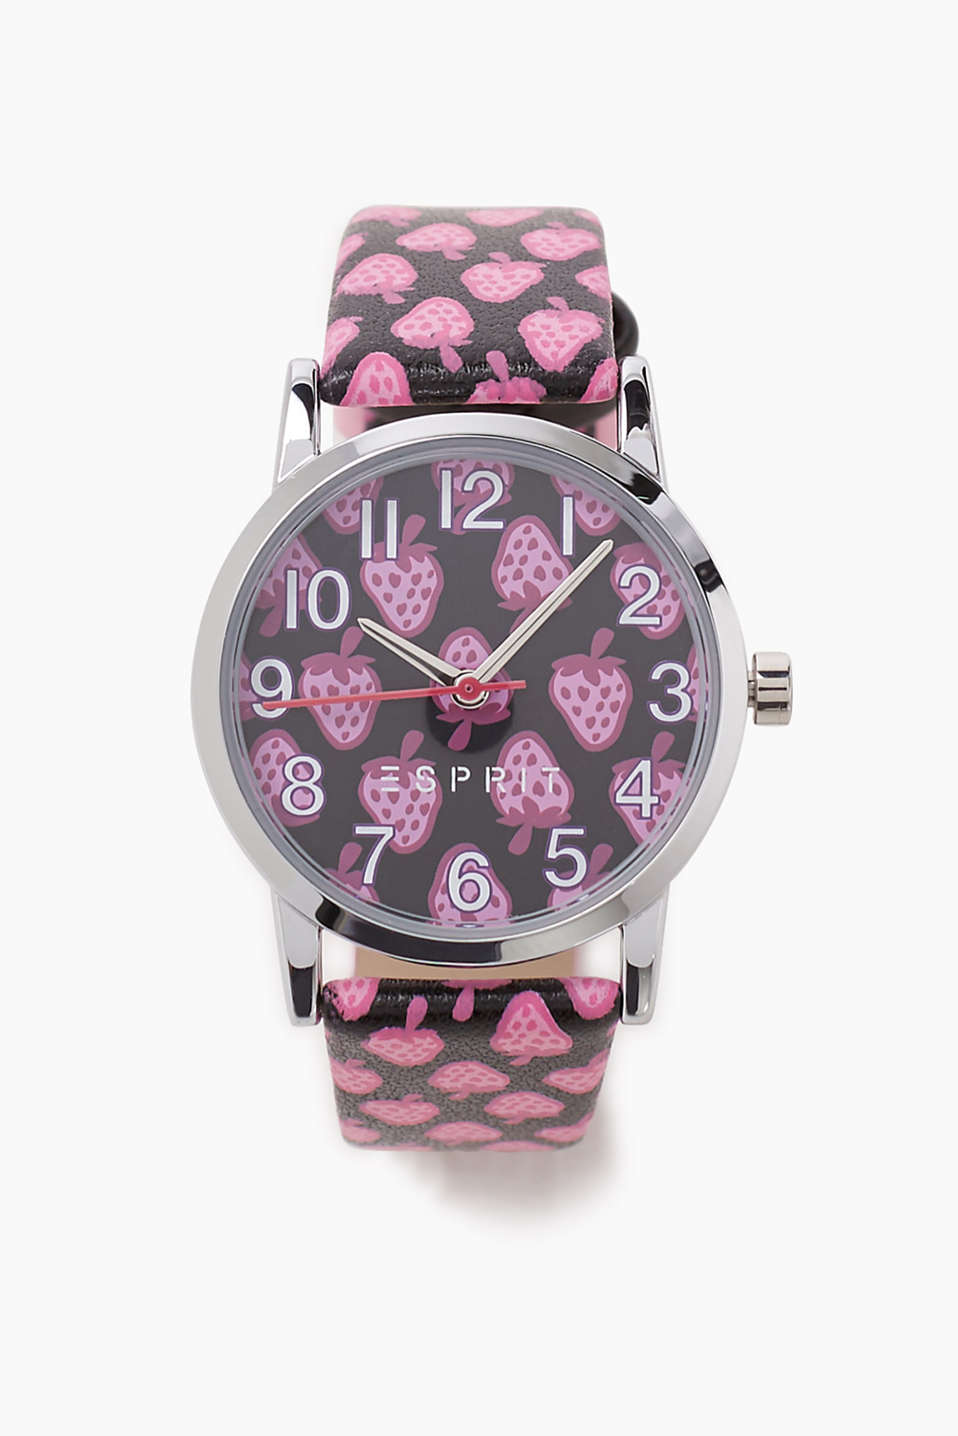 Girls just love pink! Kids watch with a strawberry design